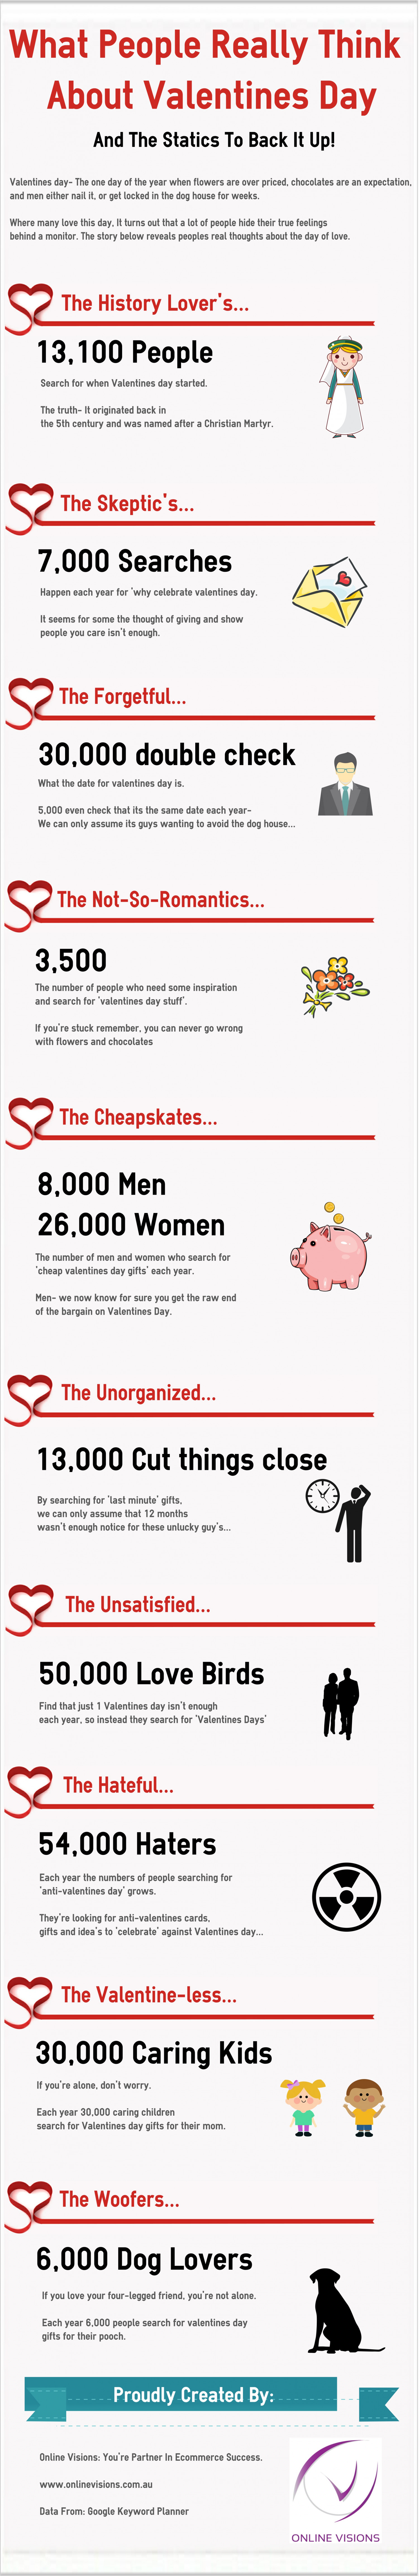 Weird Valentine's Day Searches Infographic